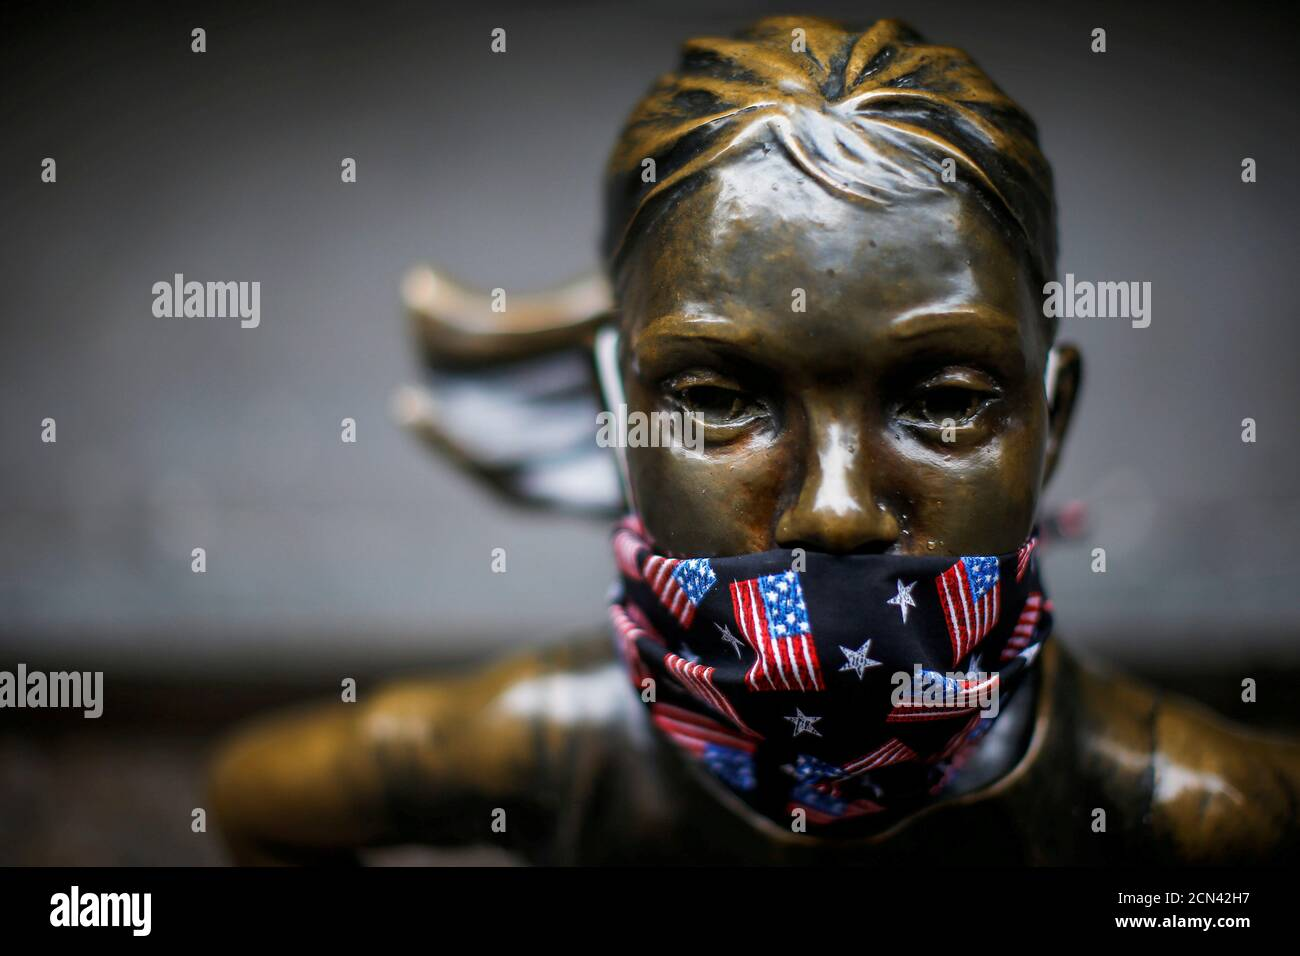 """A protective mask is seen on the face of the """"Fearless Girl"""" sculpture in the financial district, during the outbreak of the coronavirus disease (COVID-19) in New York City, New York, U.S. April 23, 2020. REUTERS/Eduardo Munoz TPX IMAGES OF THE DAY Stock Photo"""